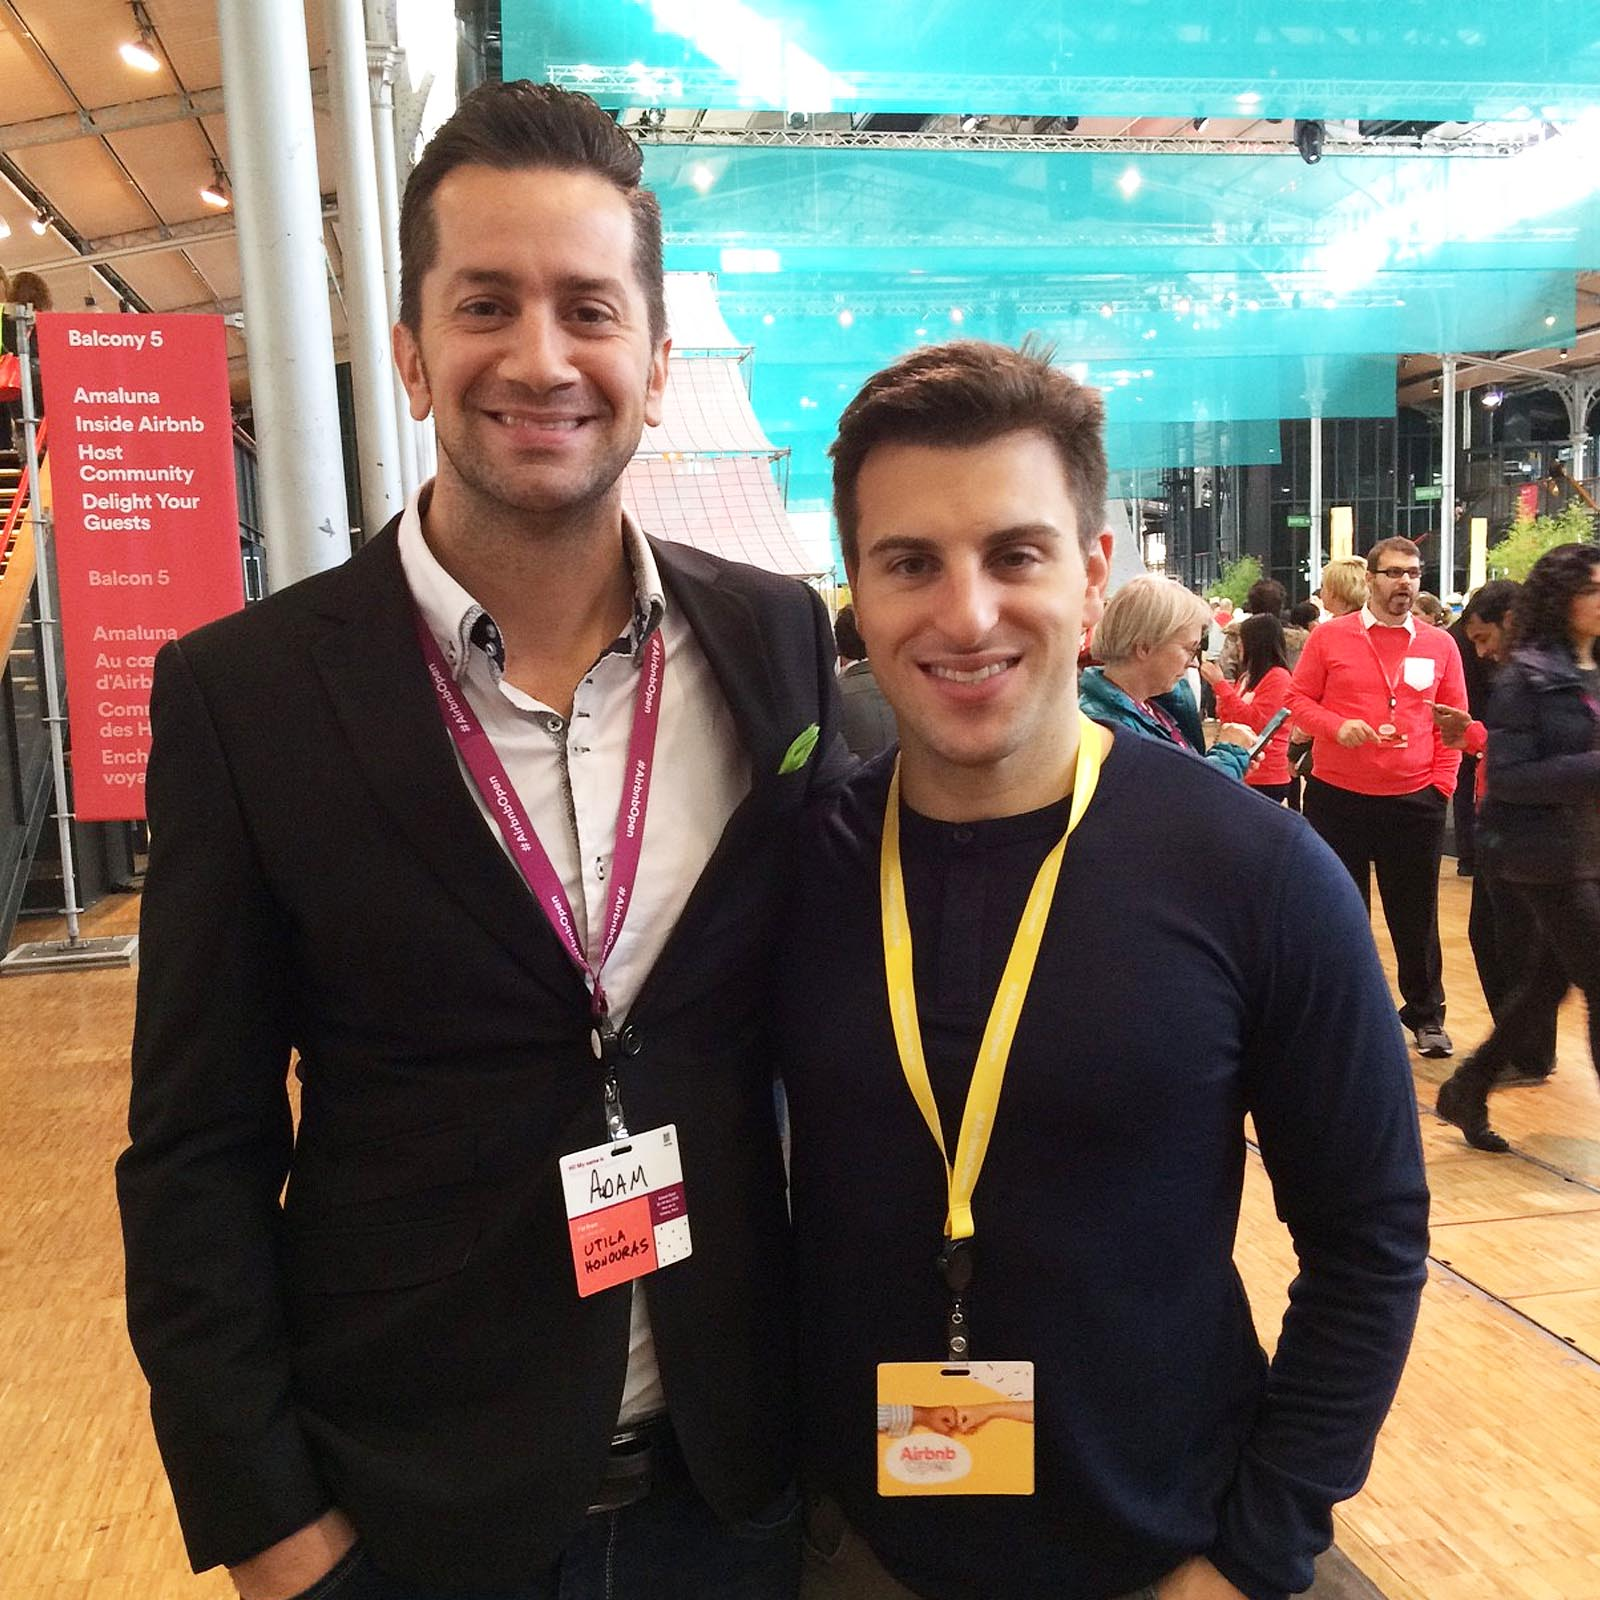 Fellow Tech Founder and Chief Executive, Brian Chesky, CEO of AirBnB